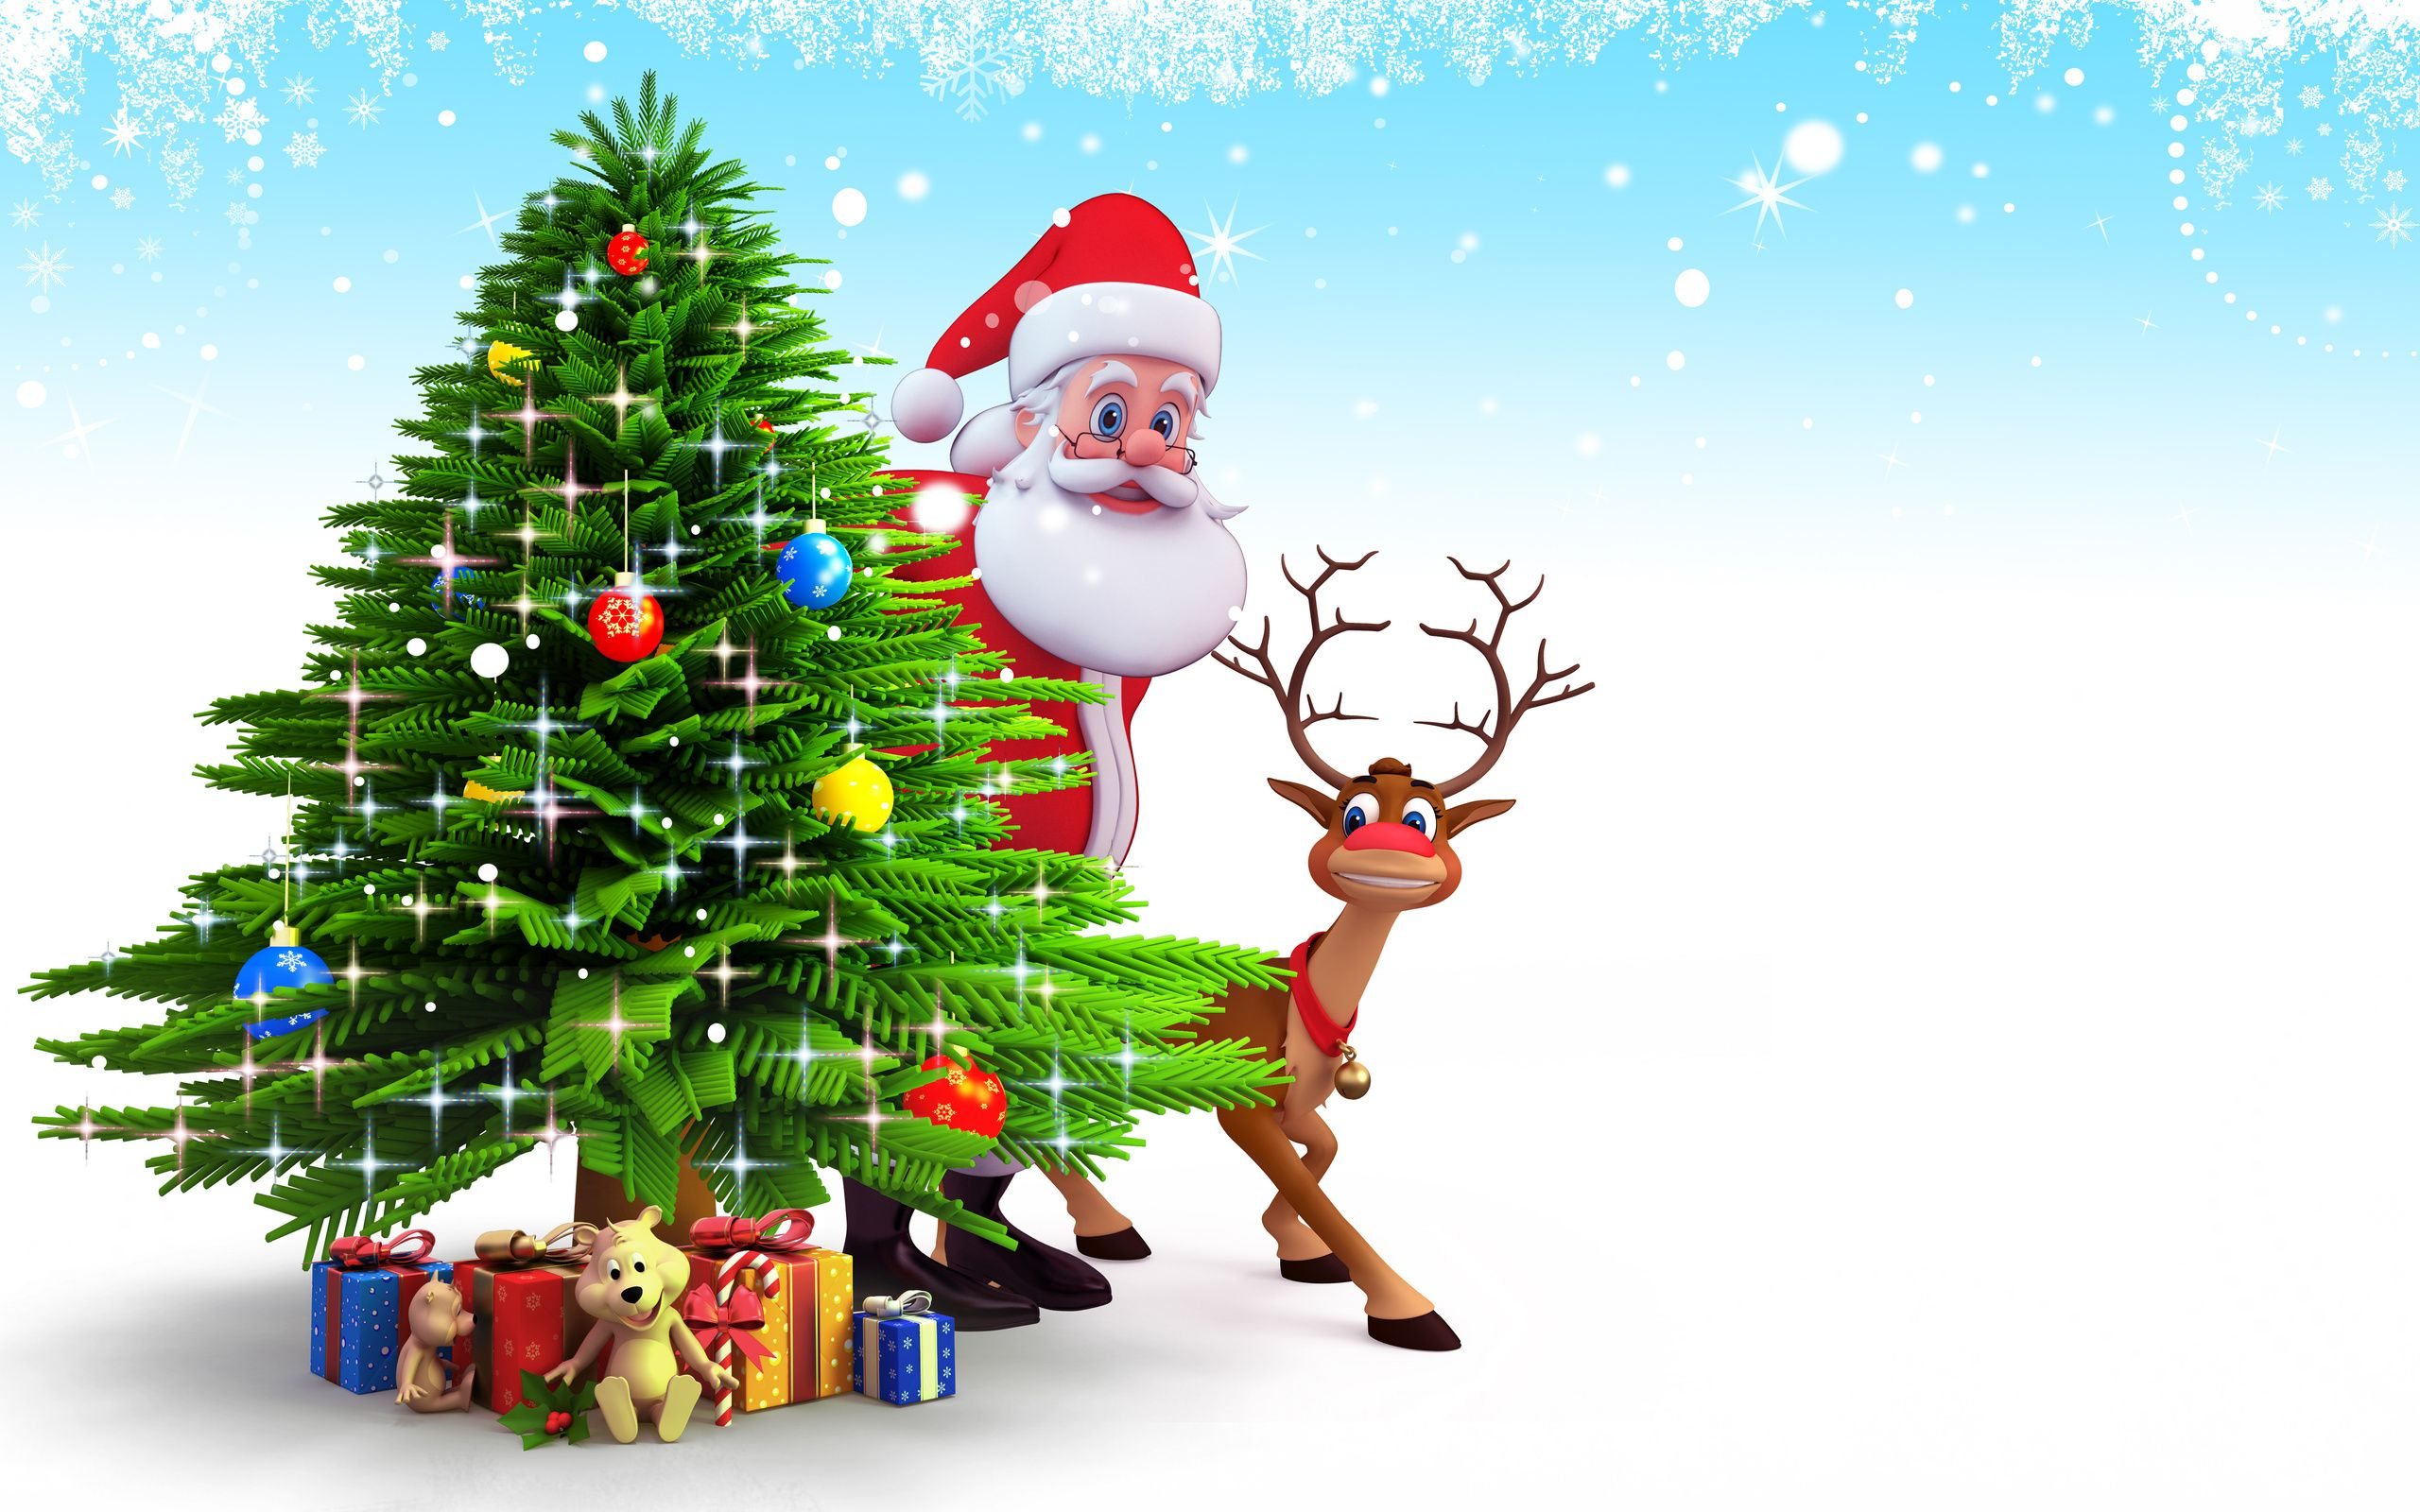 Cute Cartoon Wallpapers With Christmas 3d Animation Theme For Kids And Children Faceb Christmas Wallpaper Free Merry Christmas Wallpaper Merry Christmas Images